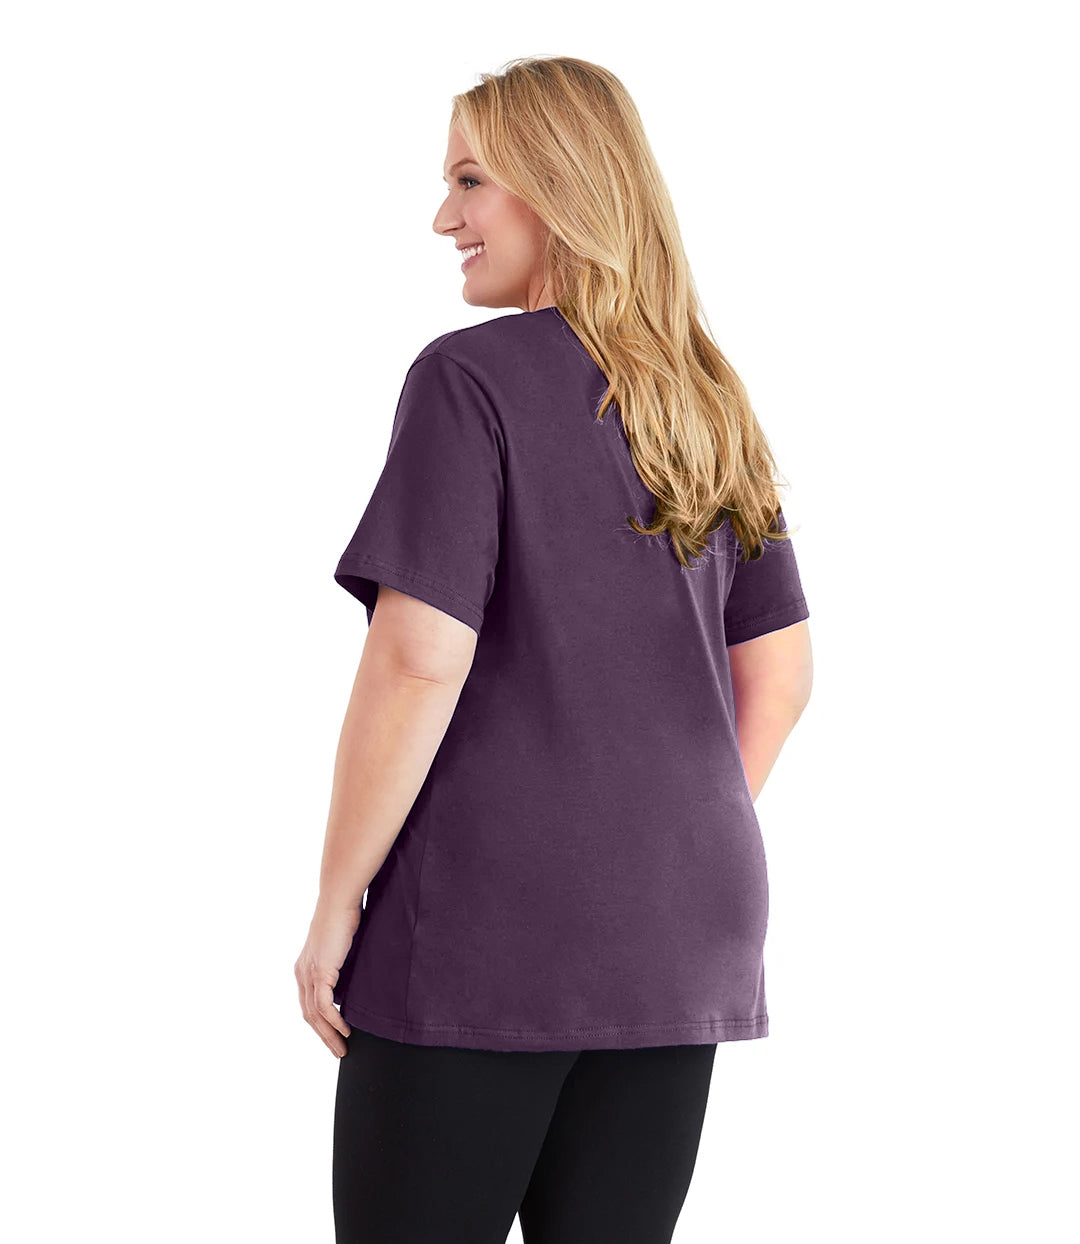 Stretch Naturals V-Neck Tee Classic Colors-Tops Short Sleeve-Hop Wo Trading Co Ltd-XL-Blackberry-JunoActive